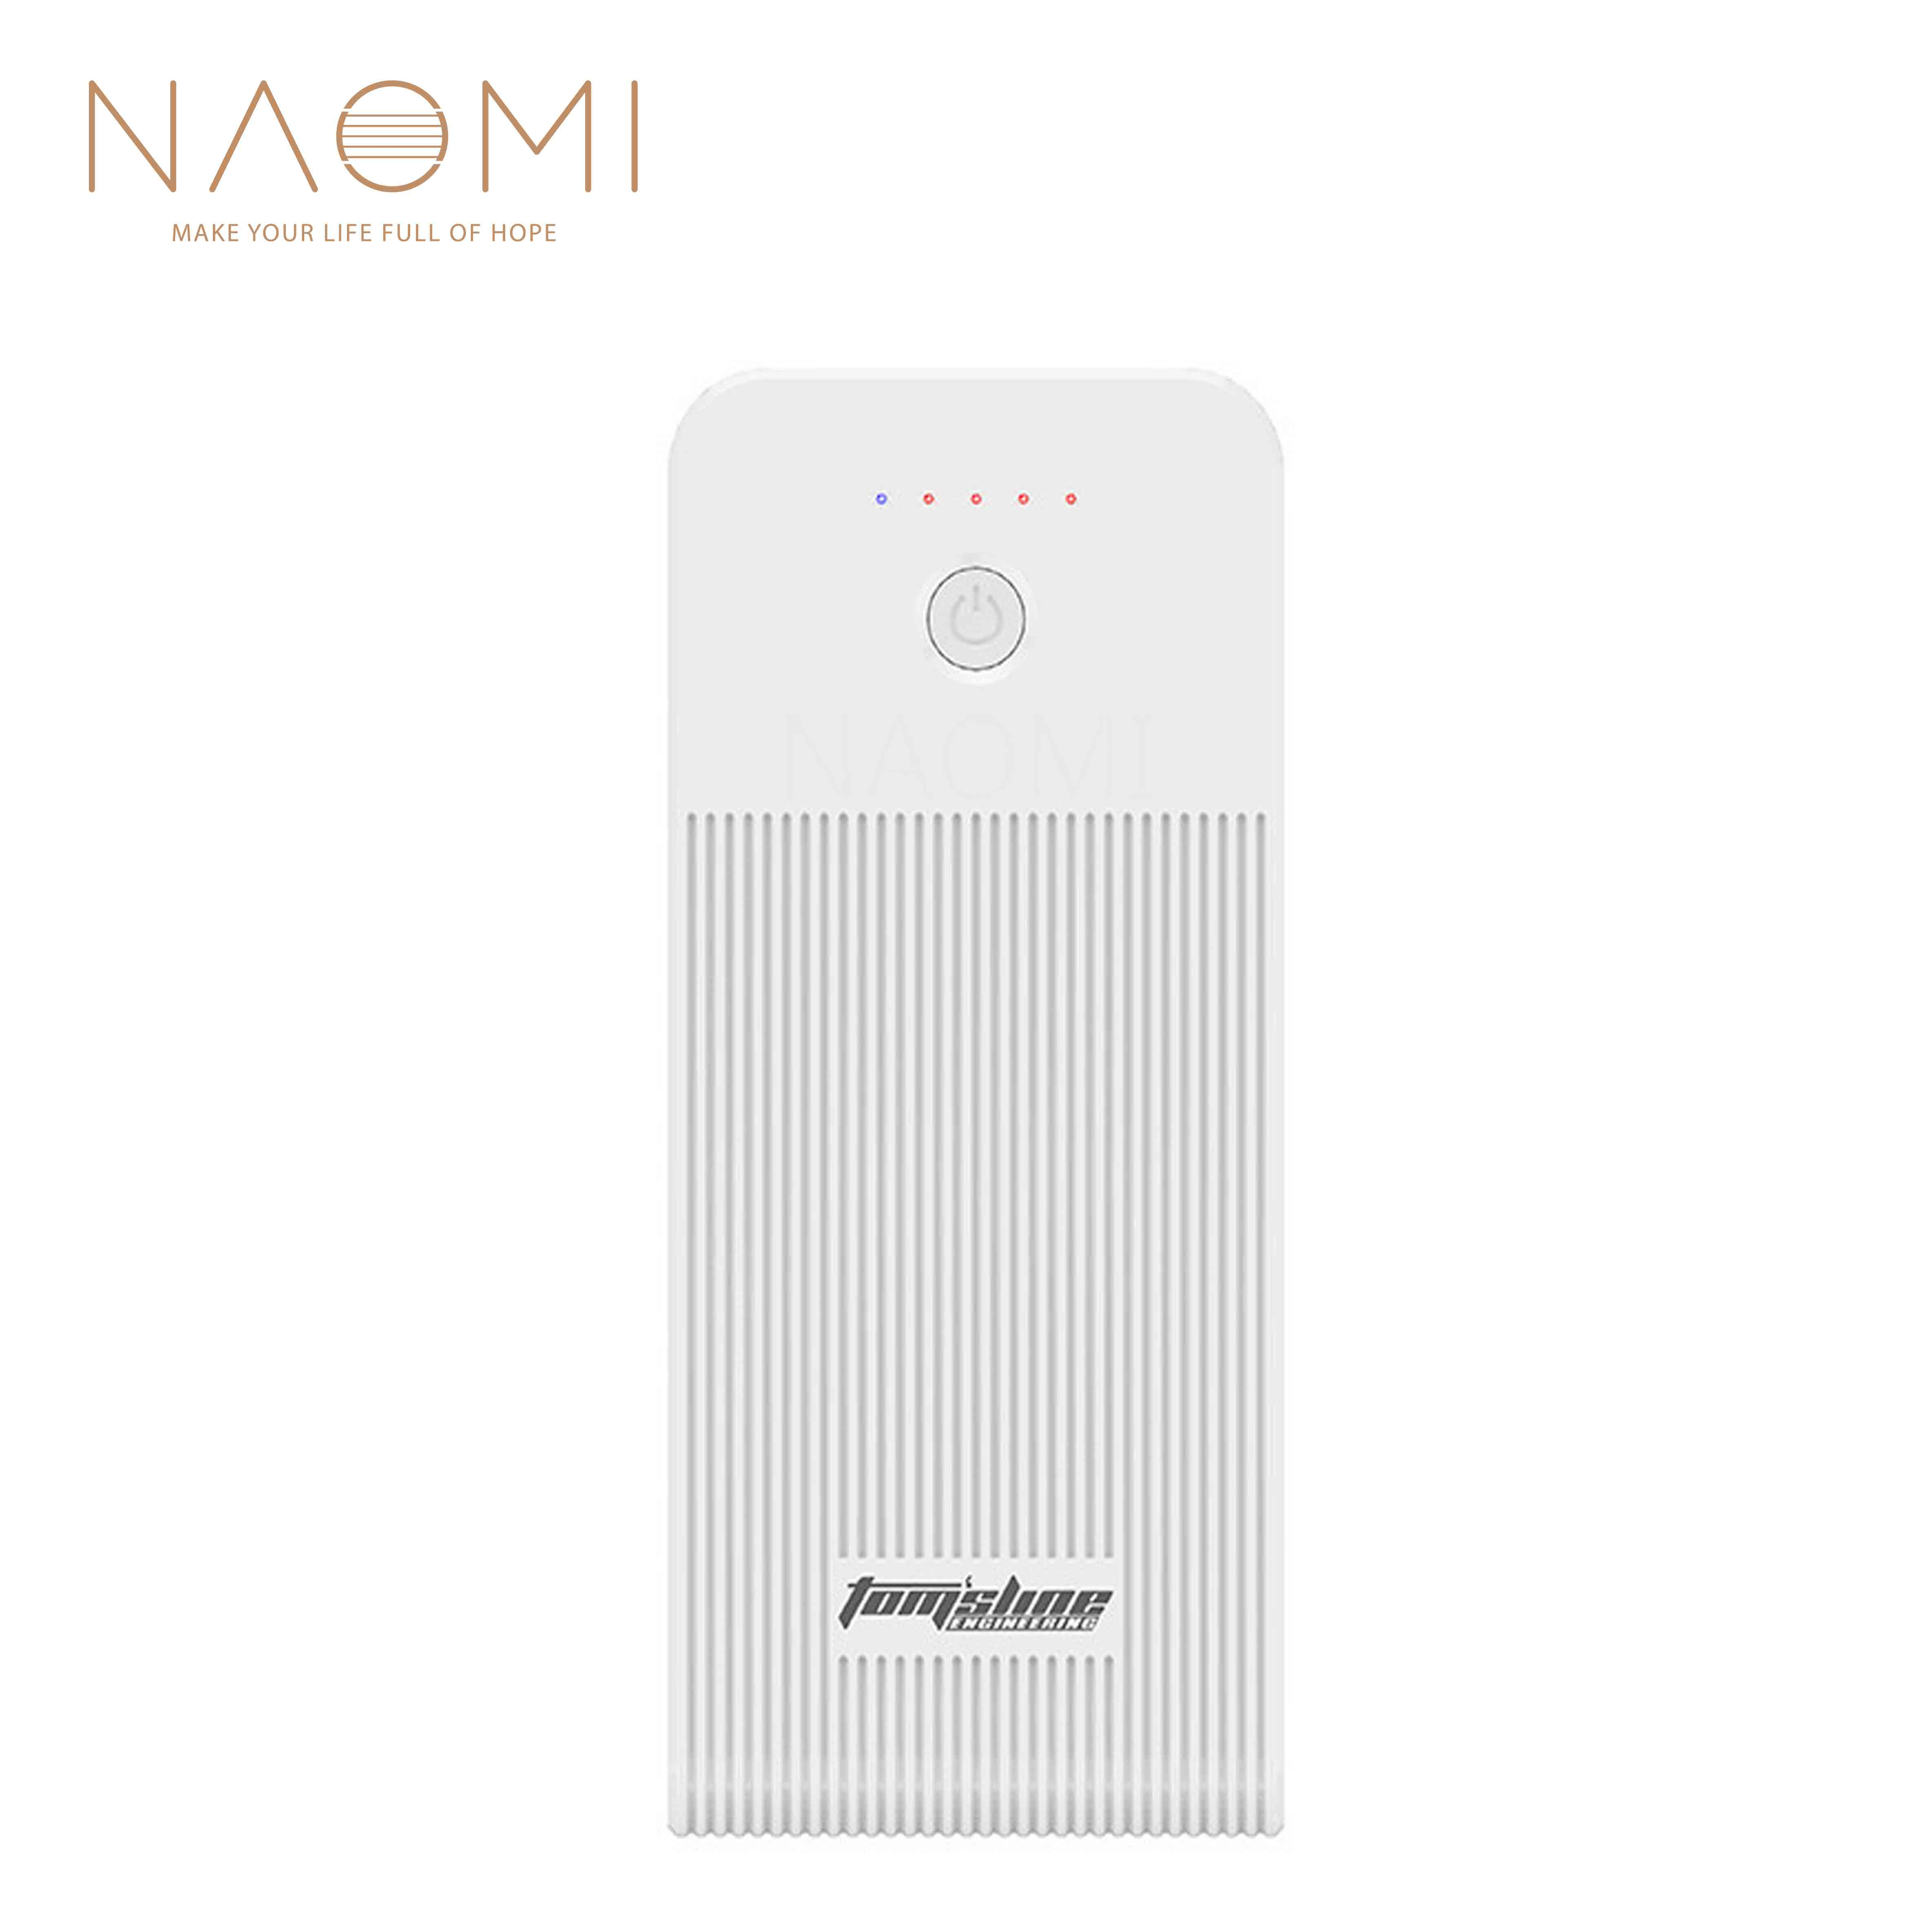 naomi aroma guitar effect pedal apw 5 rechargeable pedal power bank power supply for guitar. Black Bedroom Furniture Sets. Home Design Ideas